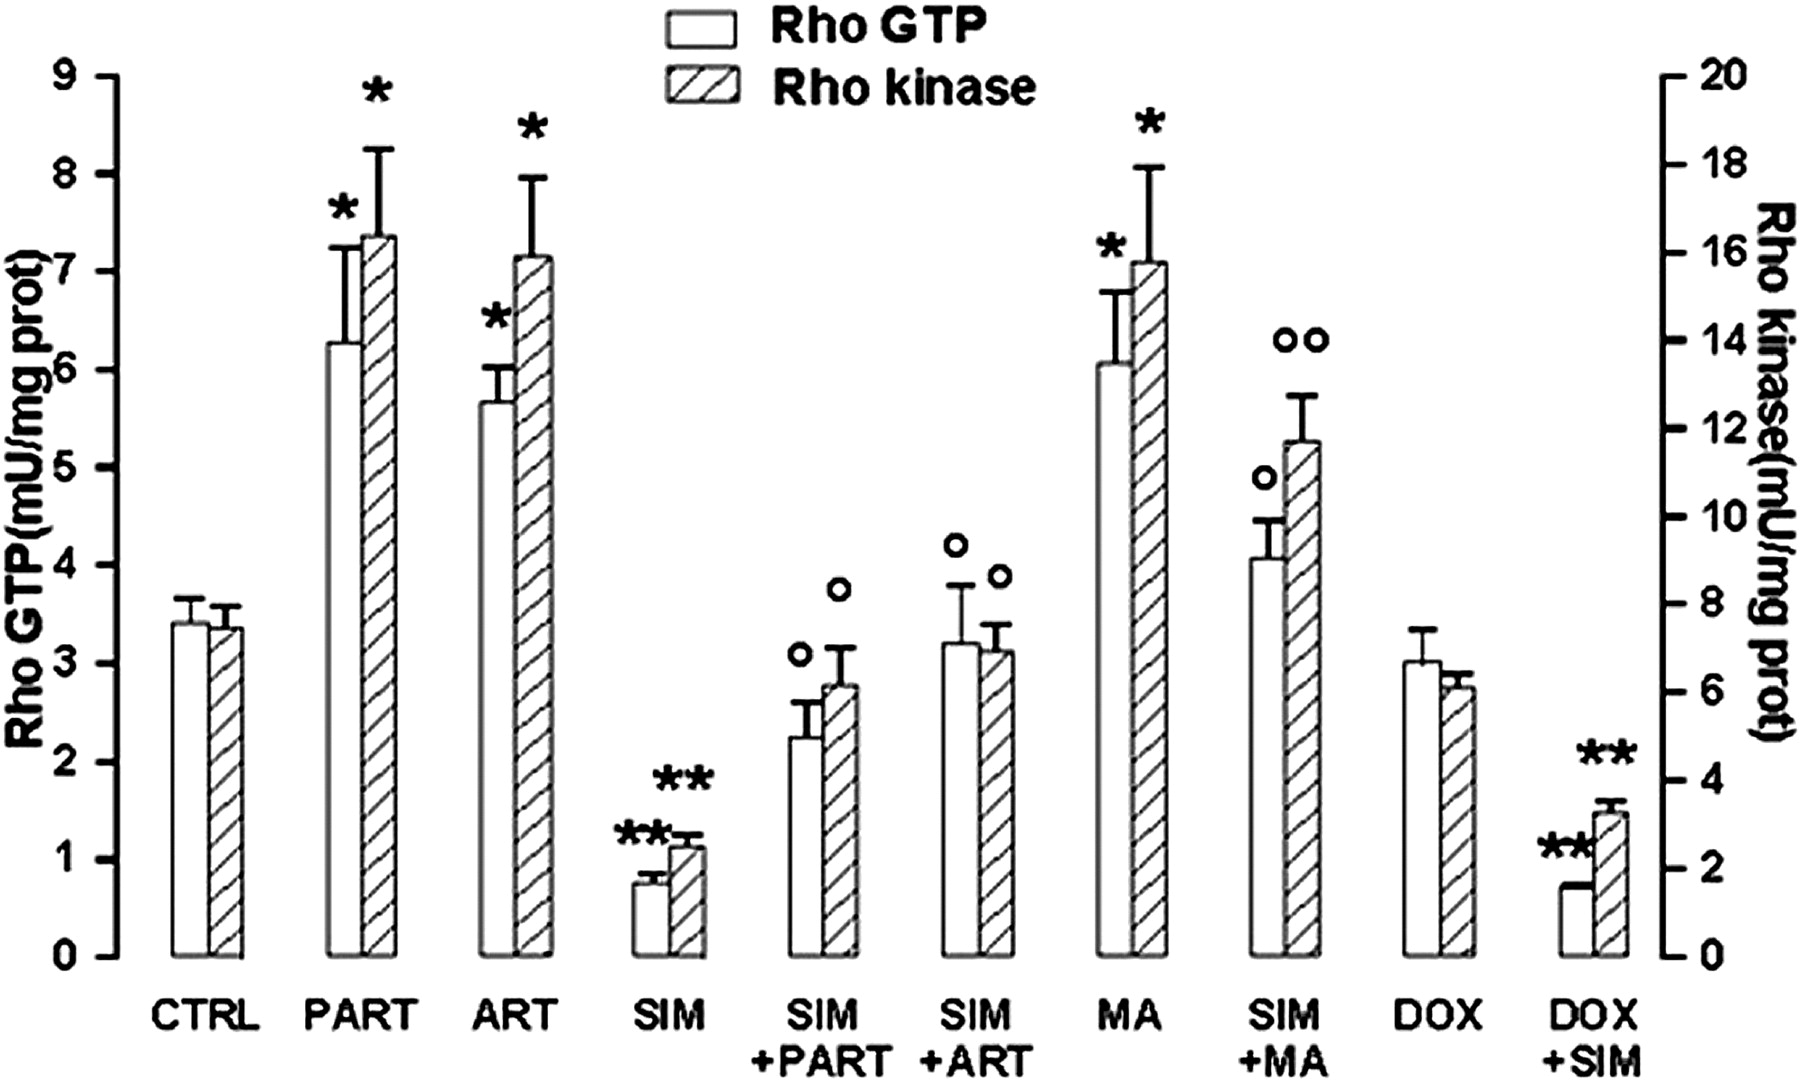 Activation Of Nuclear Factor B Pathway By Simvastatin And Rhoa Ass 5 Plastic Parts Mm Reverse Locking Circuit Board Support Silencing Increases Doxorubicin Cytotoxicity In Human Colon Cancer Ht29 Cells Molecular